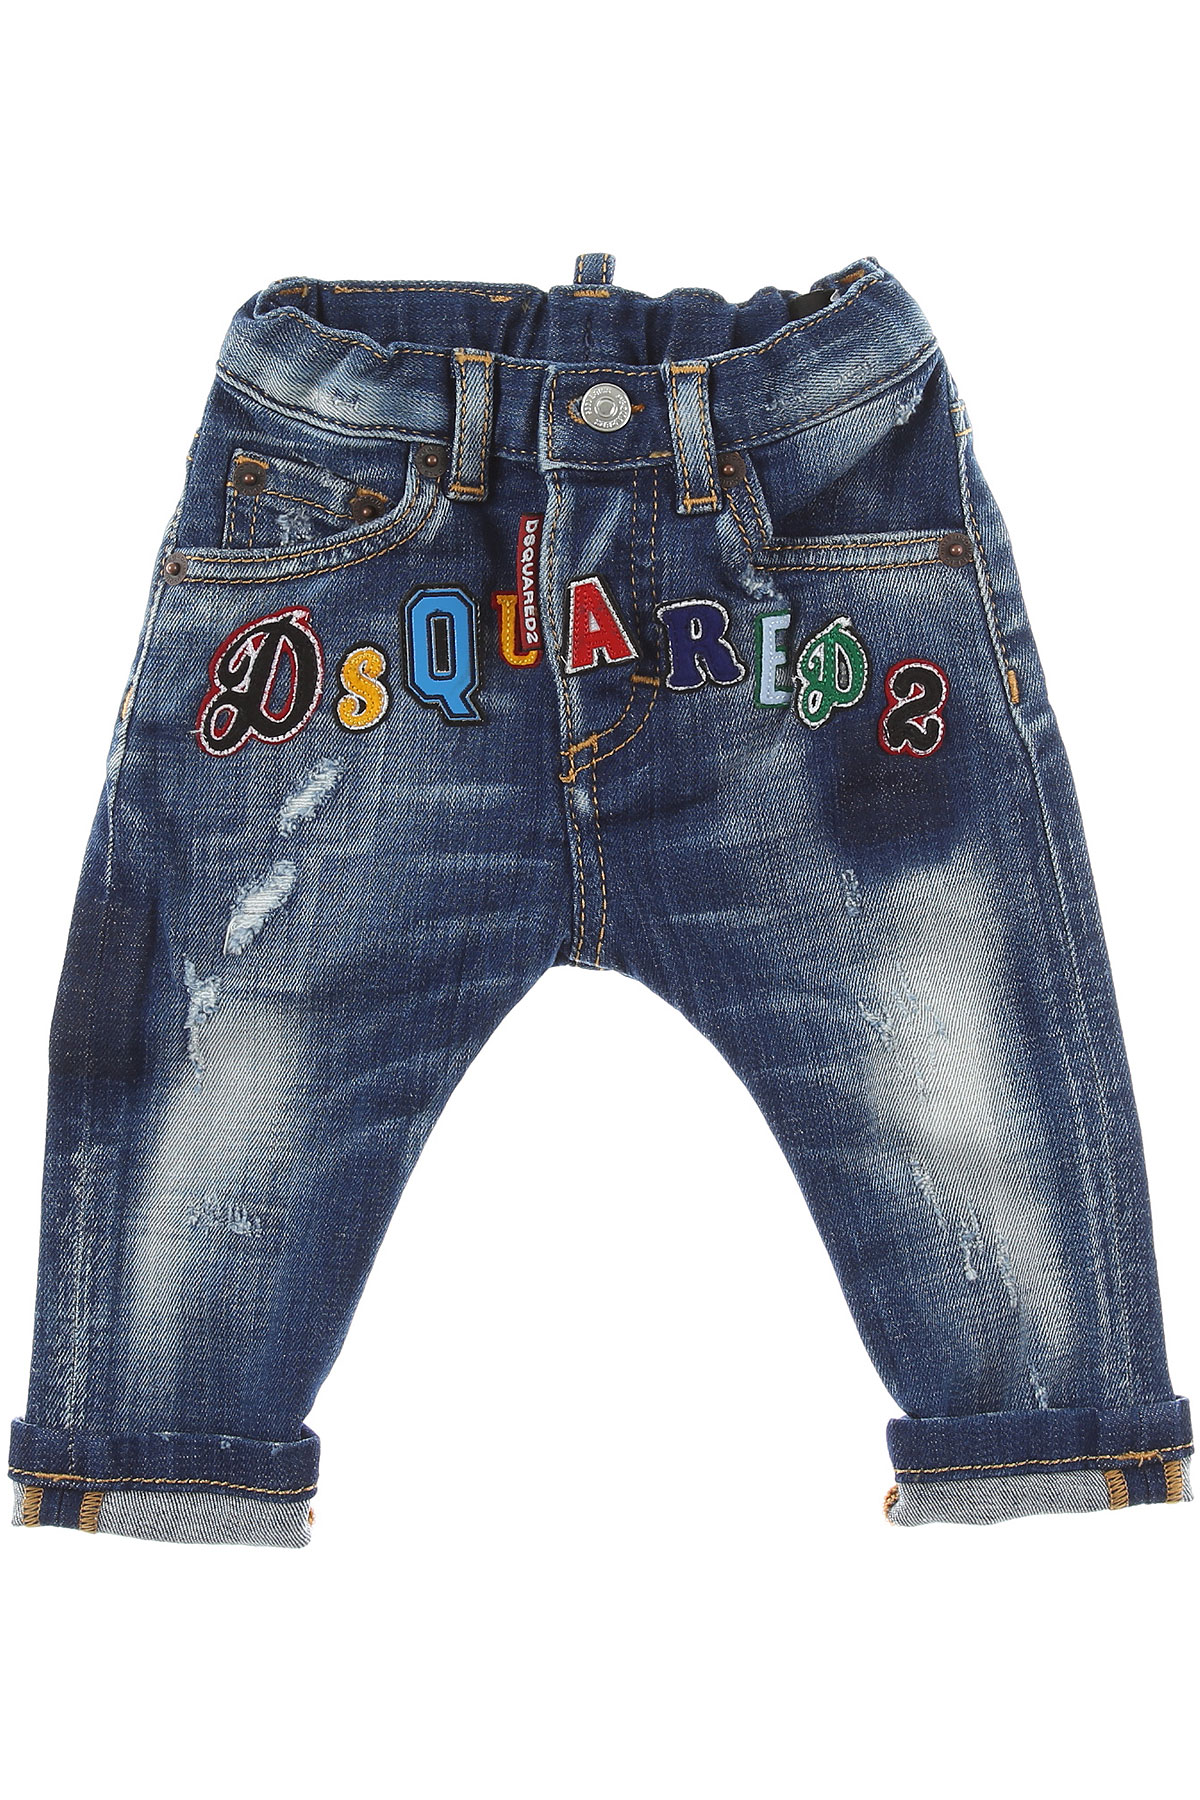 Dsquared2 Baby Jeans for Boys, Denim, Cotton, 2017, 12M 18M 2Y 3Y 6M 9M